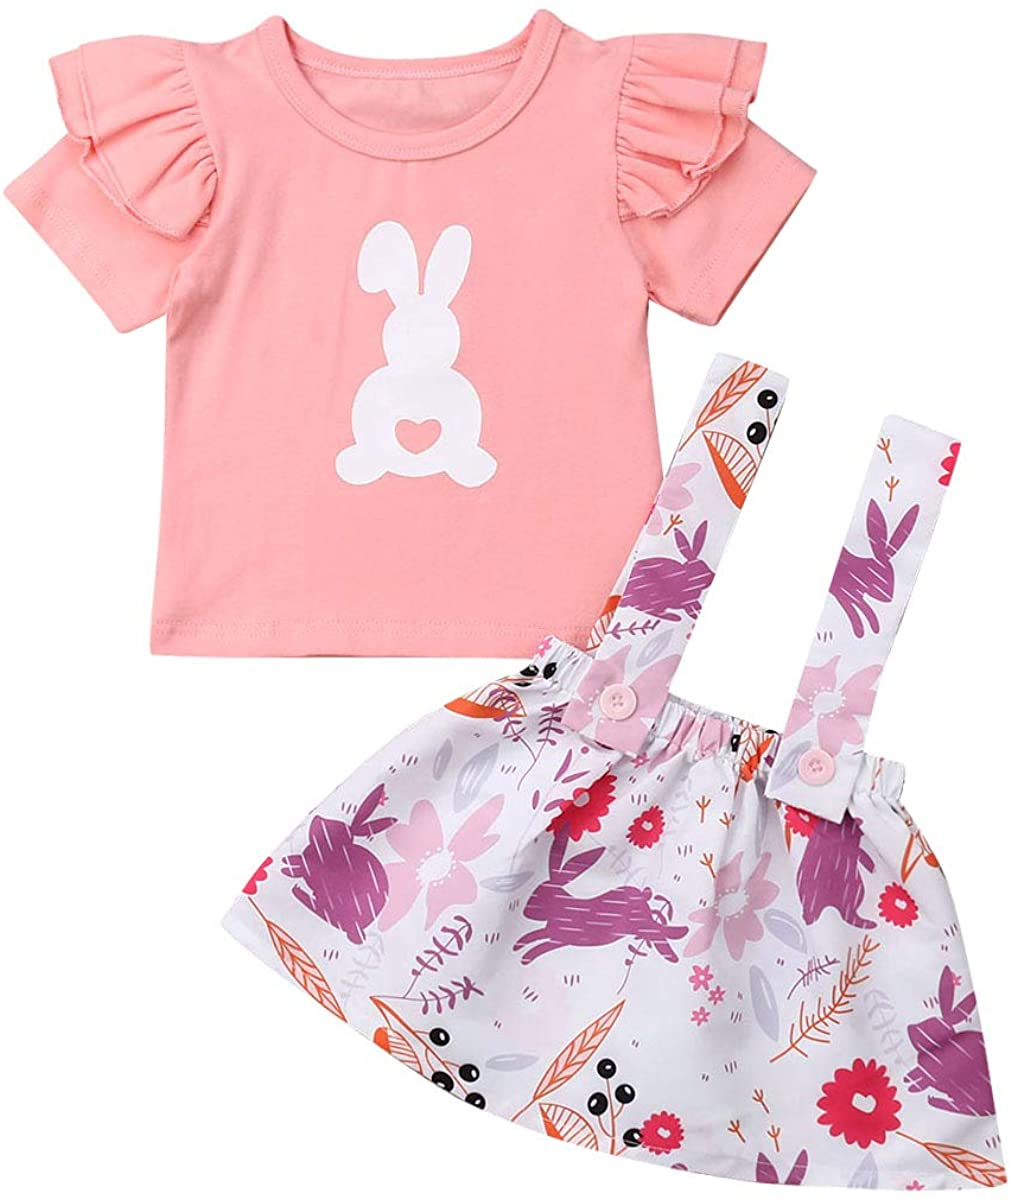 2PCS Infant Baby Girl Clothes Ruffle Short Sleeve Pink Rabbit T-Shirt Top+Easter Bunny Print Suspender Skirt